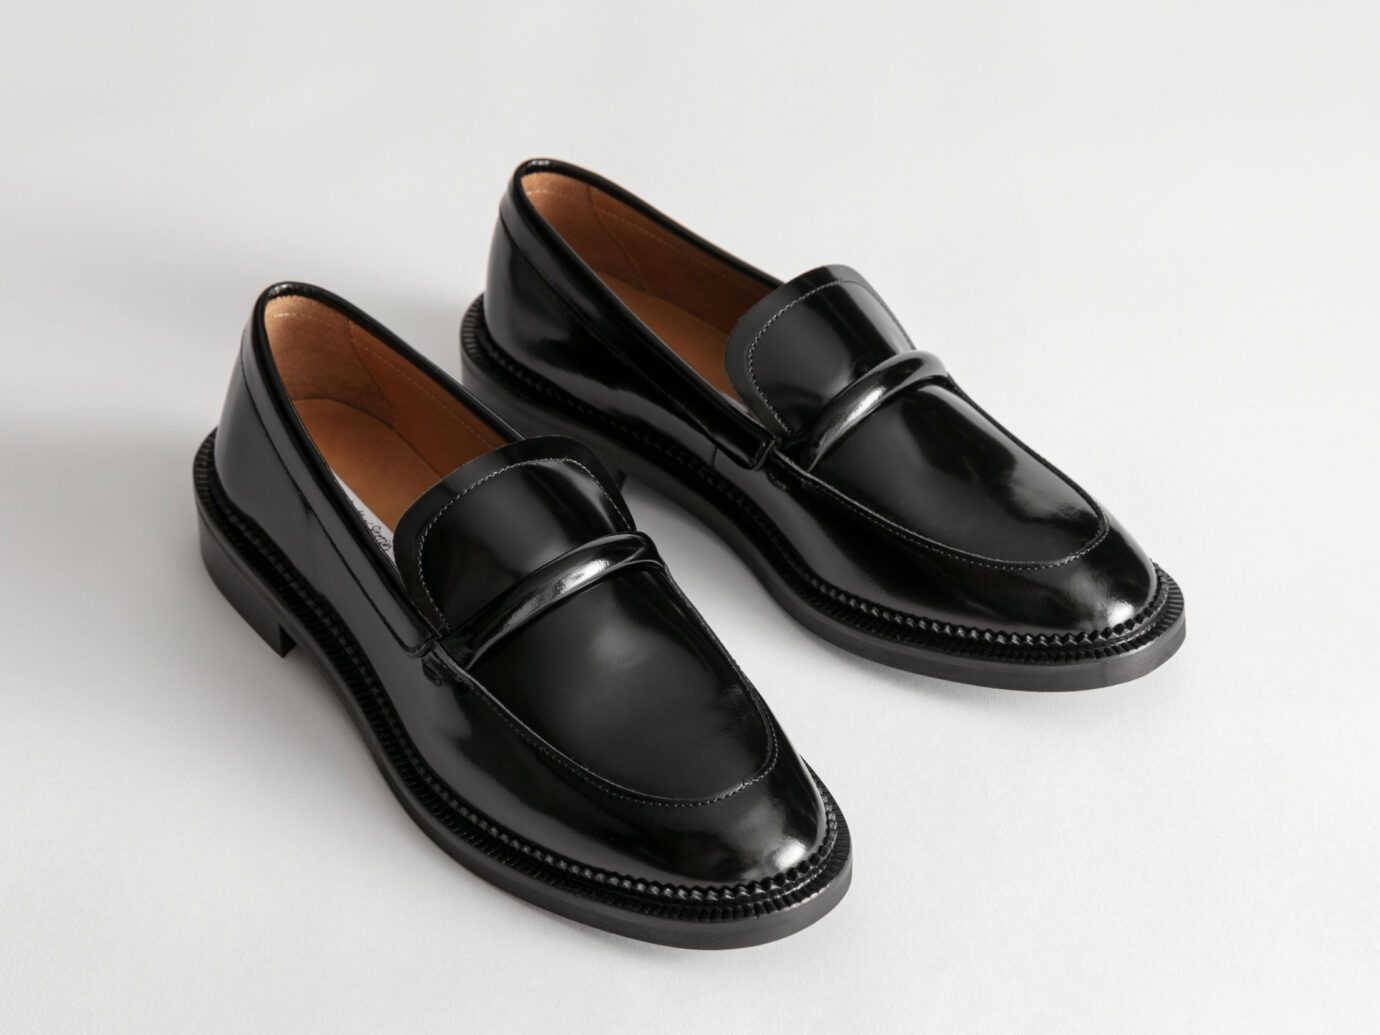 & Other Stories Leather Penny Loafers